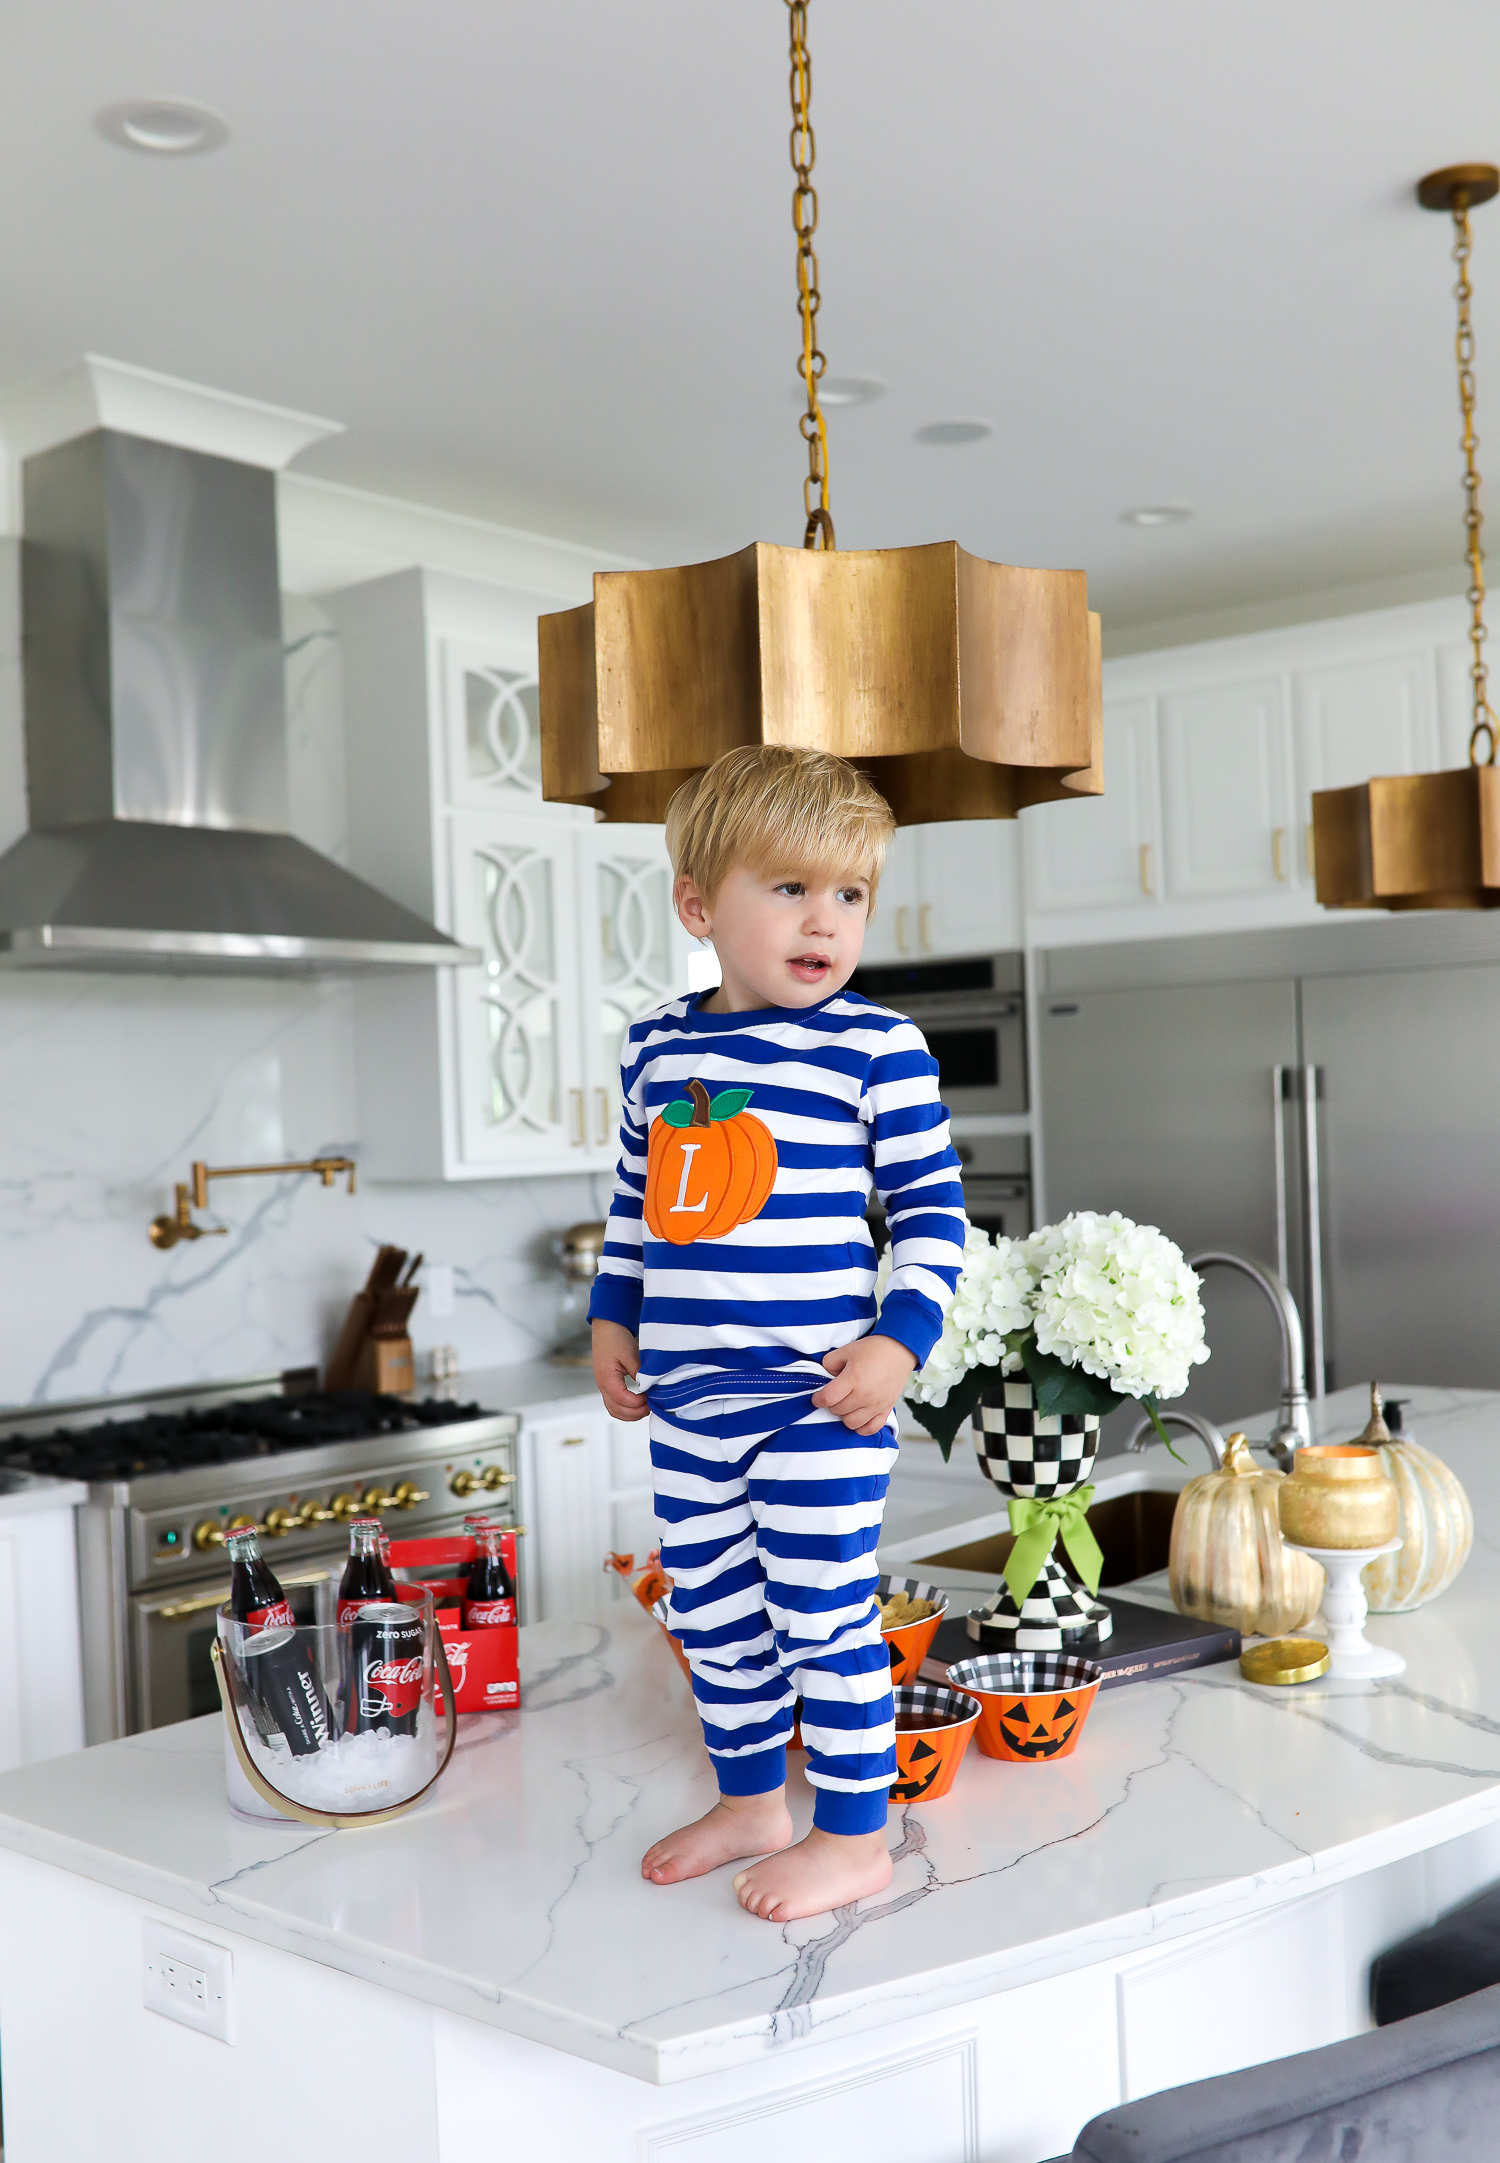 pinterest white gold kitchen, smocked auction pumpkin fall Pajamas, emily ann gemma home, pinterest white ktichen inspiration, fall decor 2019 kitchen-2